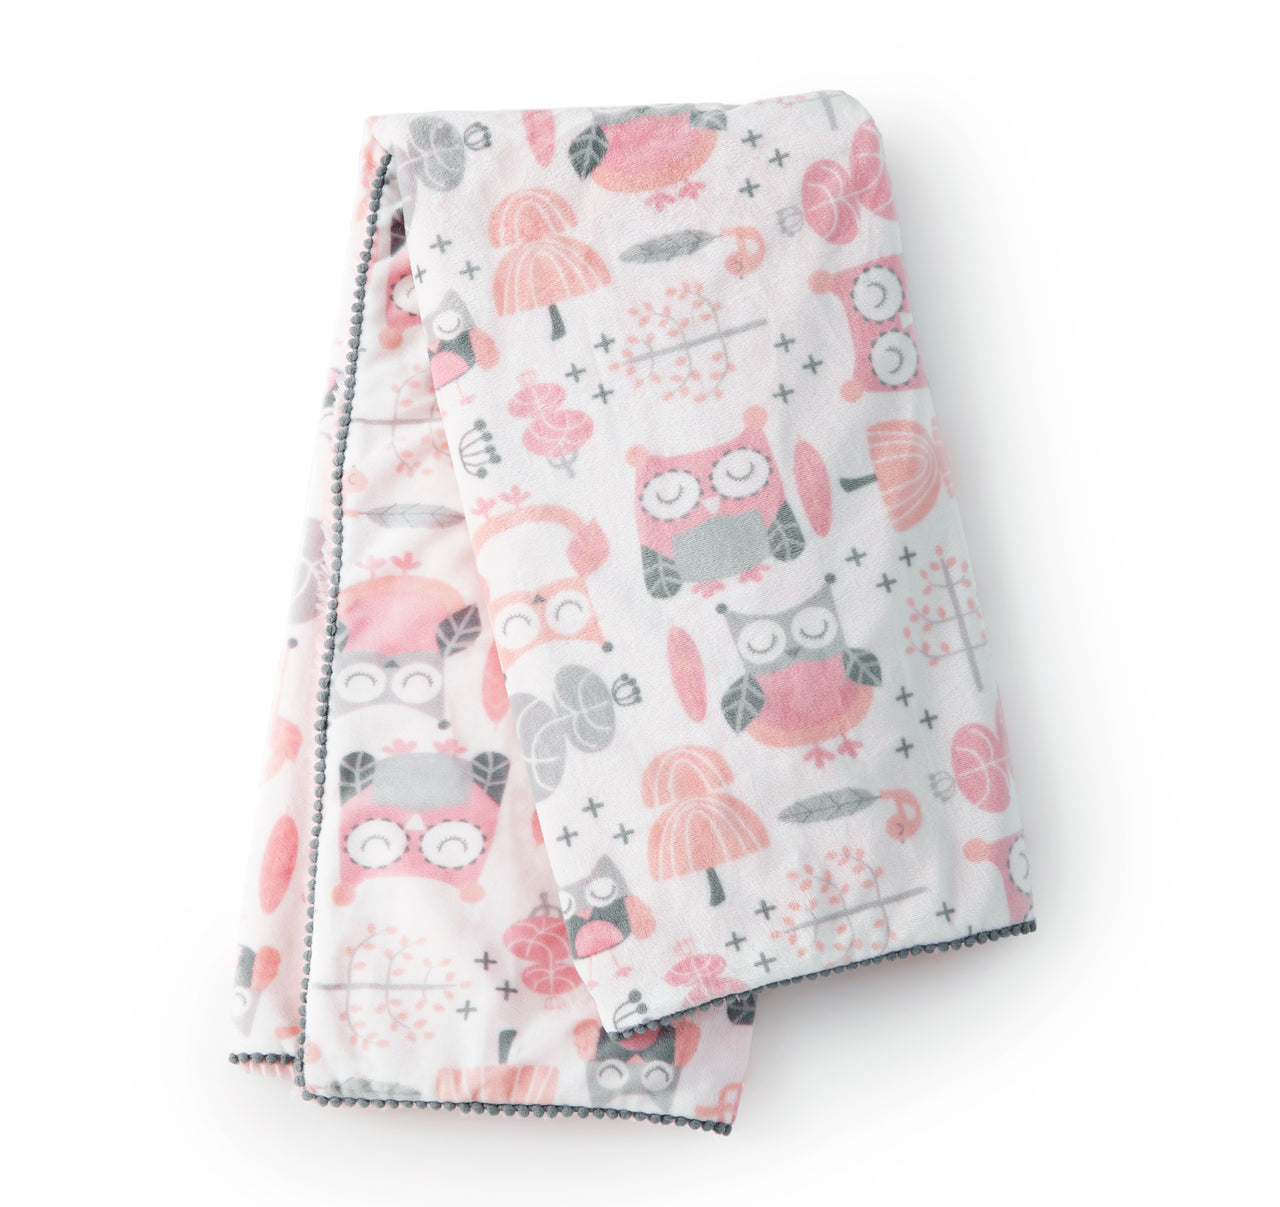 Night Owl Blanket - Pink